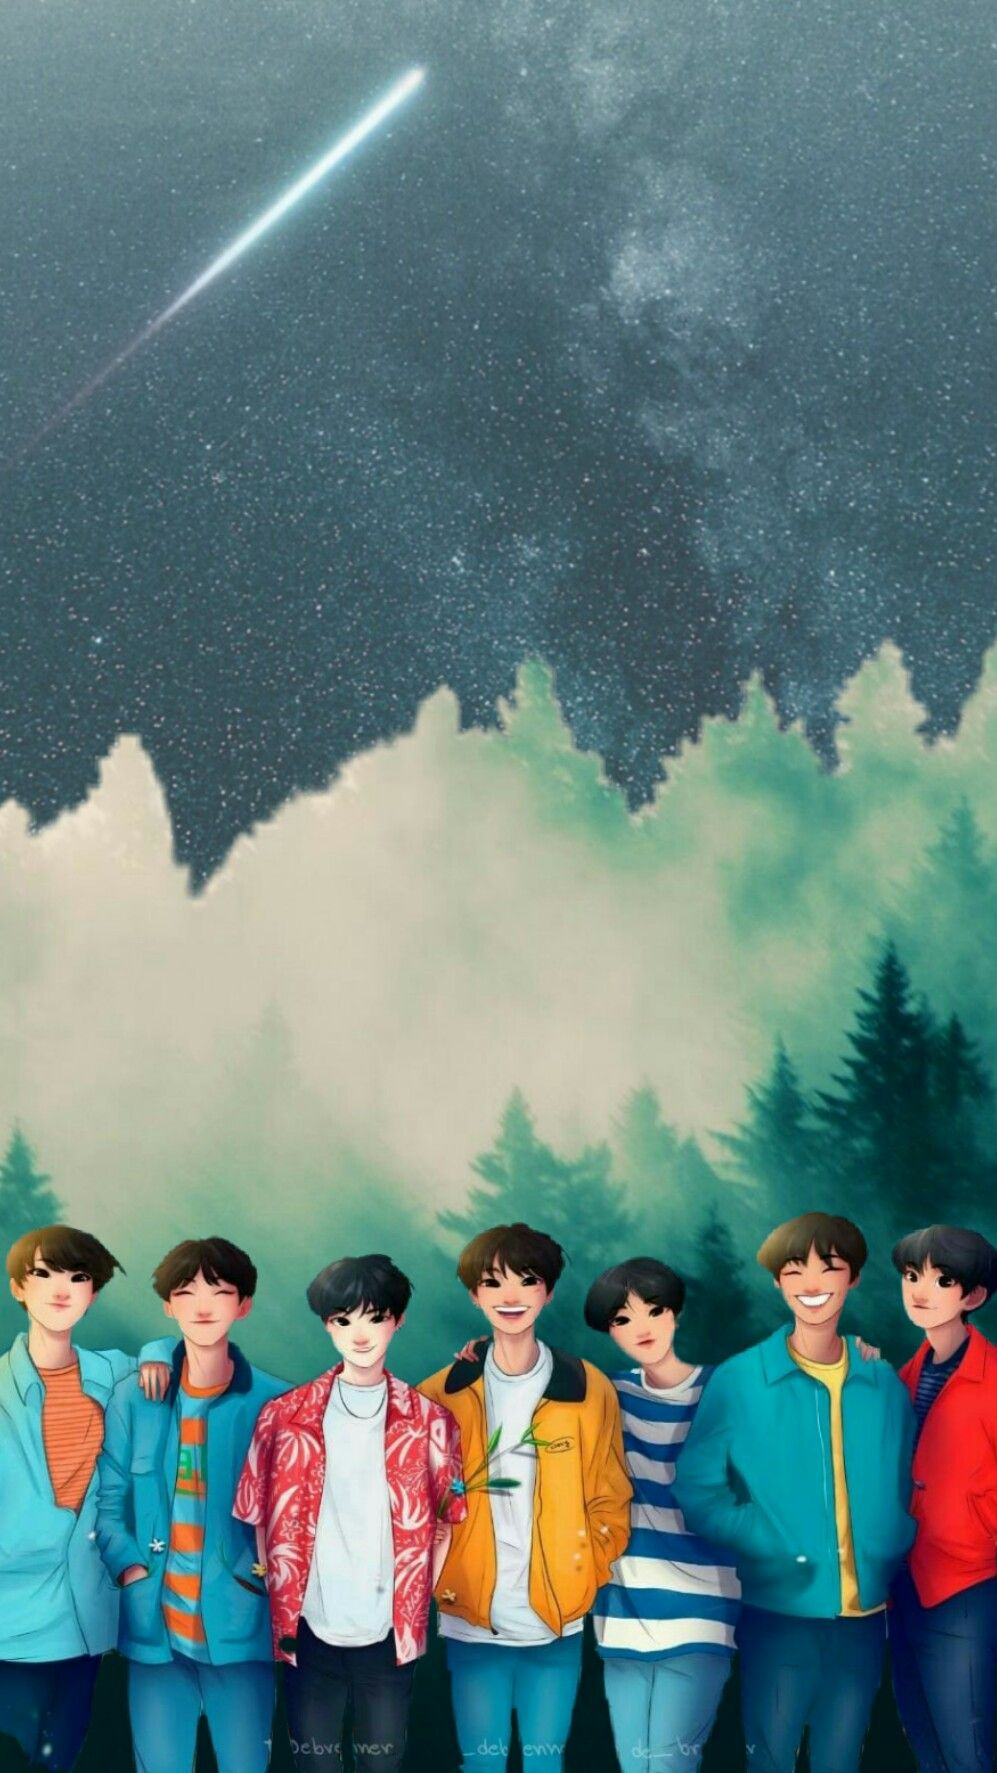 Bts Phone Wallpaper - Bts Wallpapers For Phone , HD Wallpaper & Backgrounds